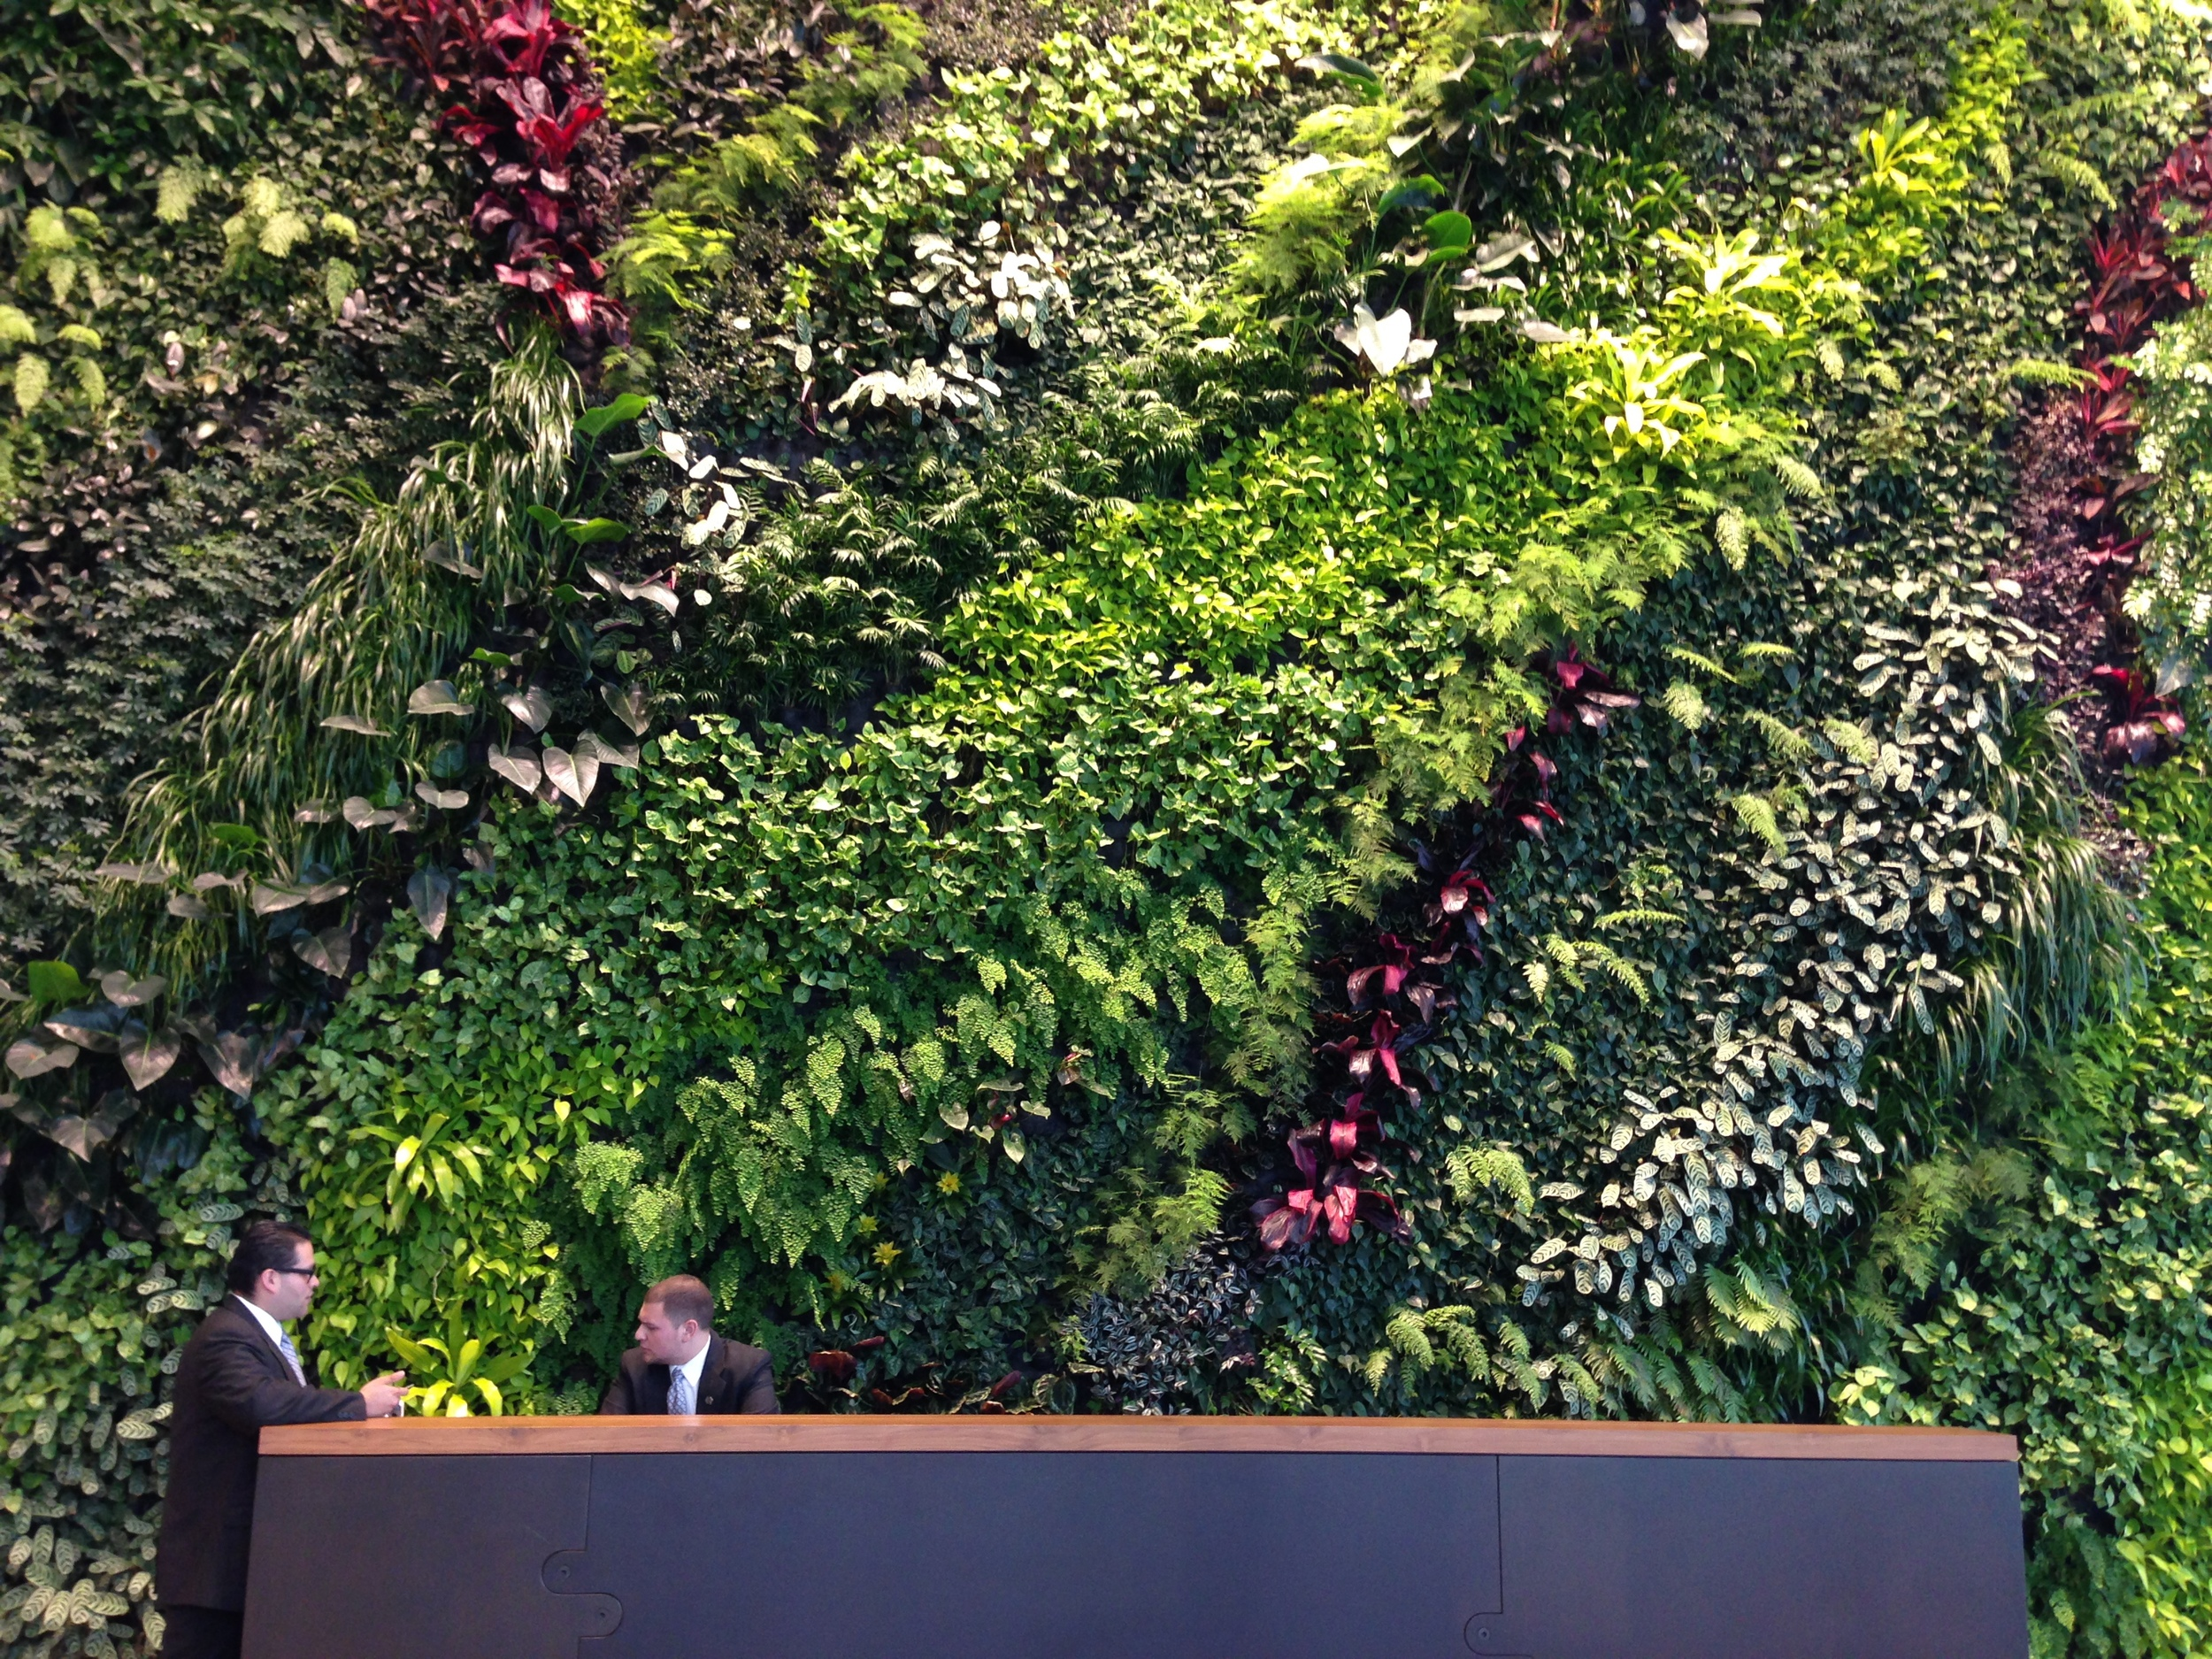 The lobby of one office building I visited had two solid walls of plants. I wonder if there's a startup that could make a product for that...